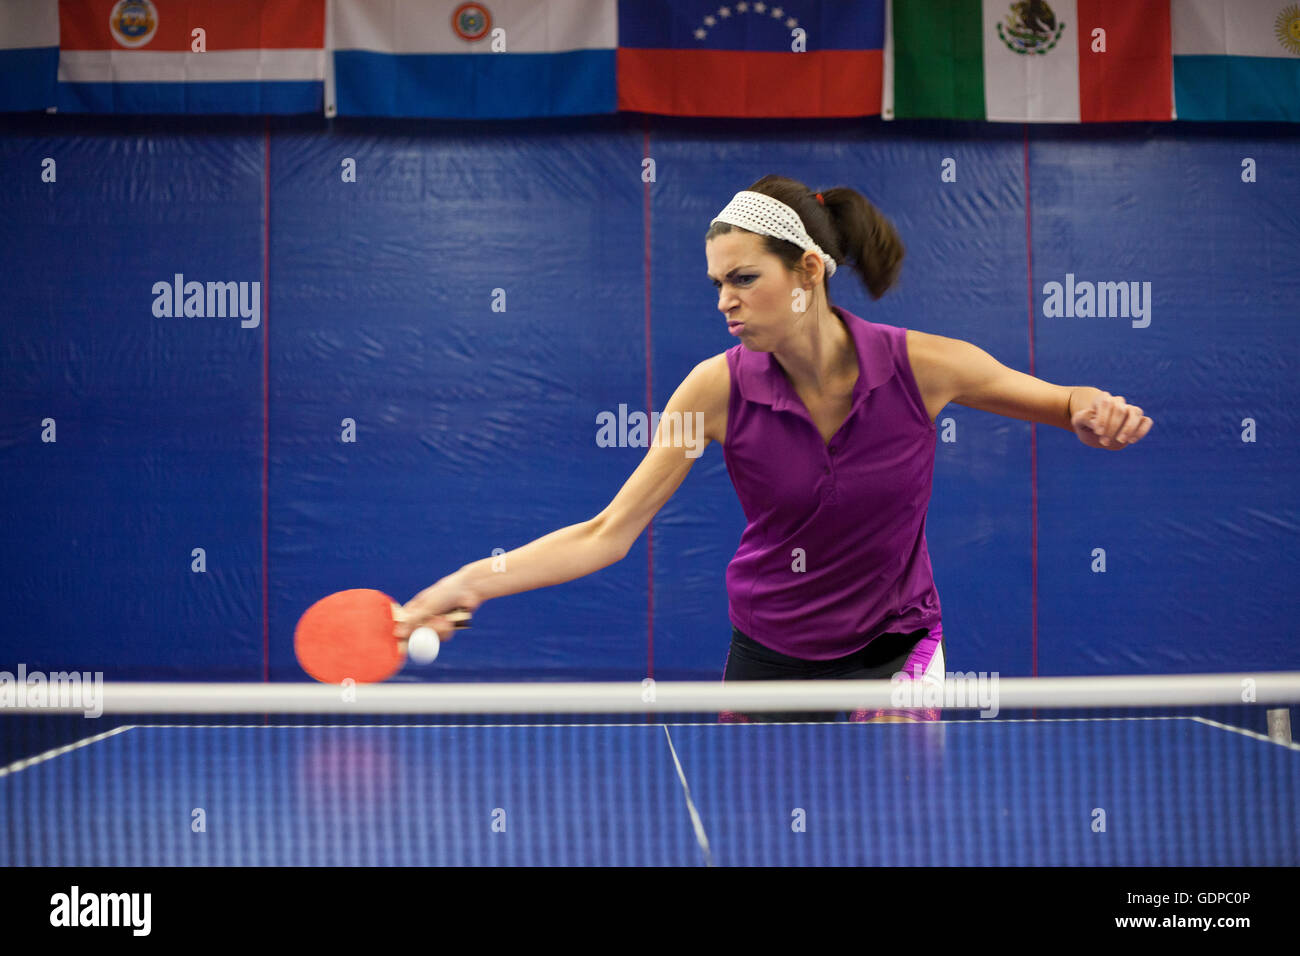 Formation de joueur de tennis de table Photo Stock